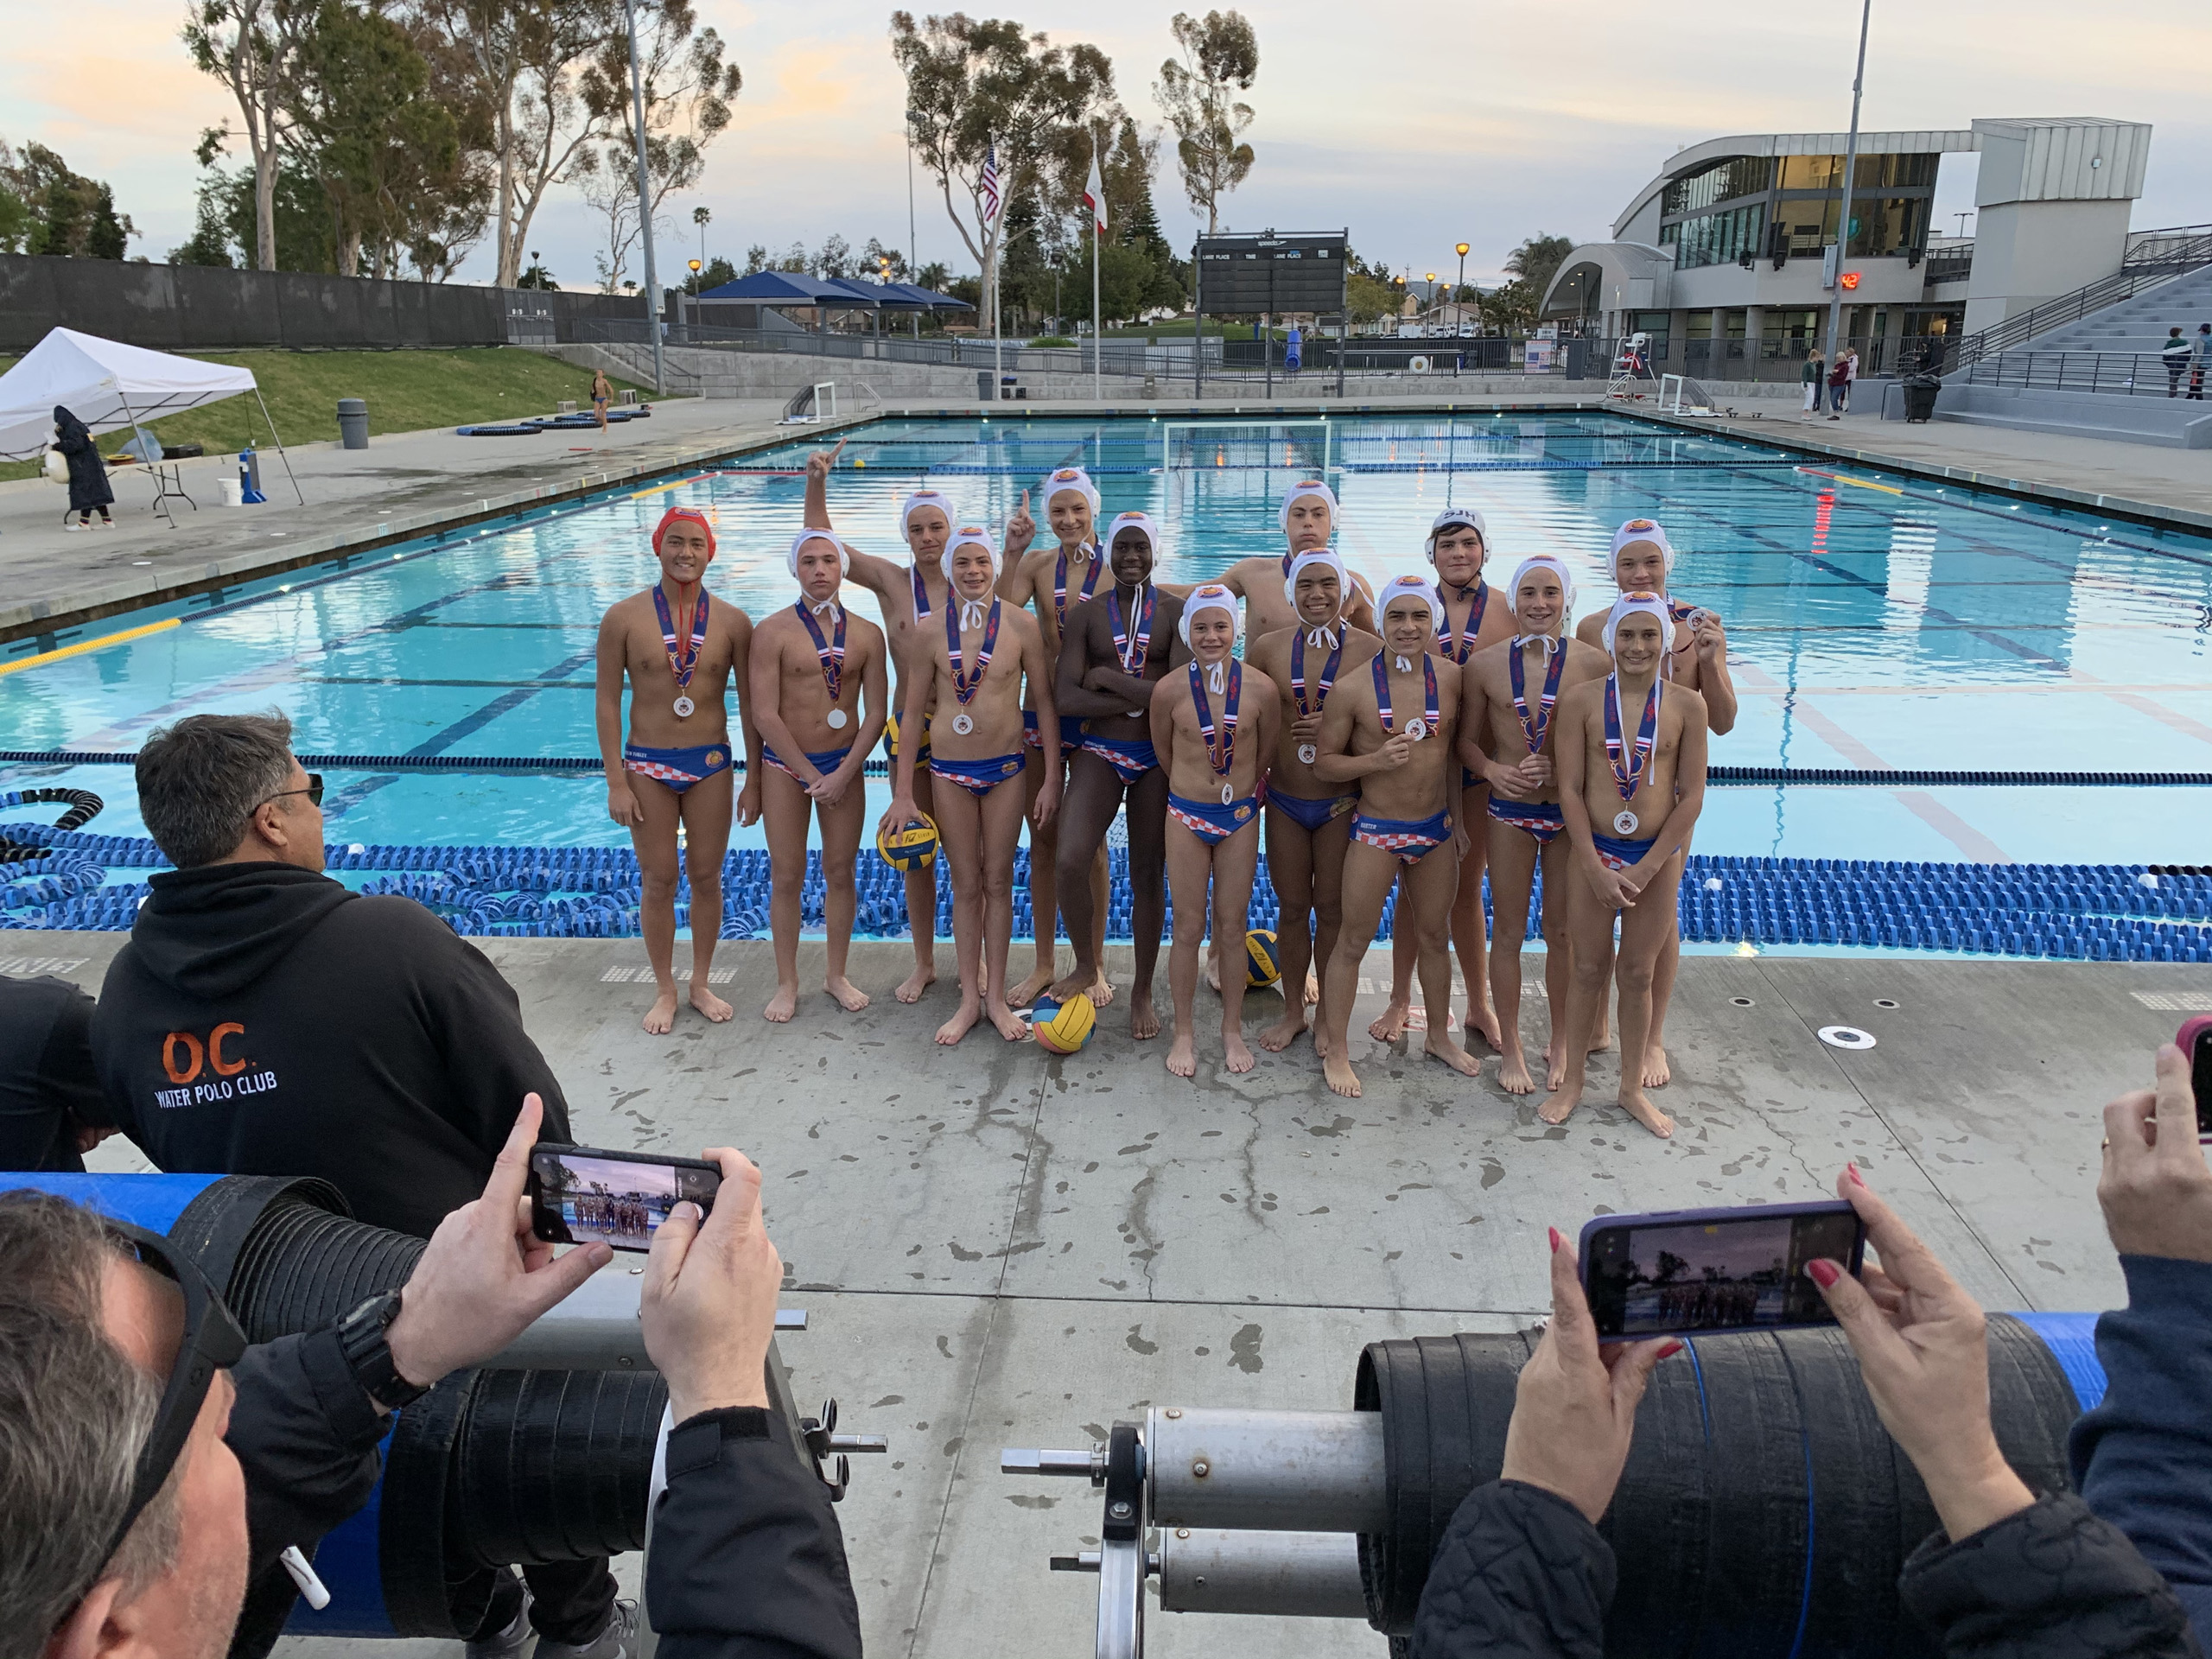 ocwpc-14u-boys-blue-team-2020-03-08